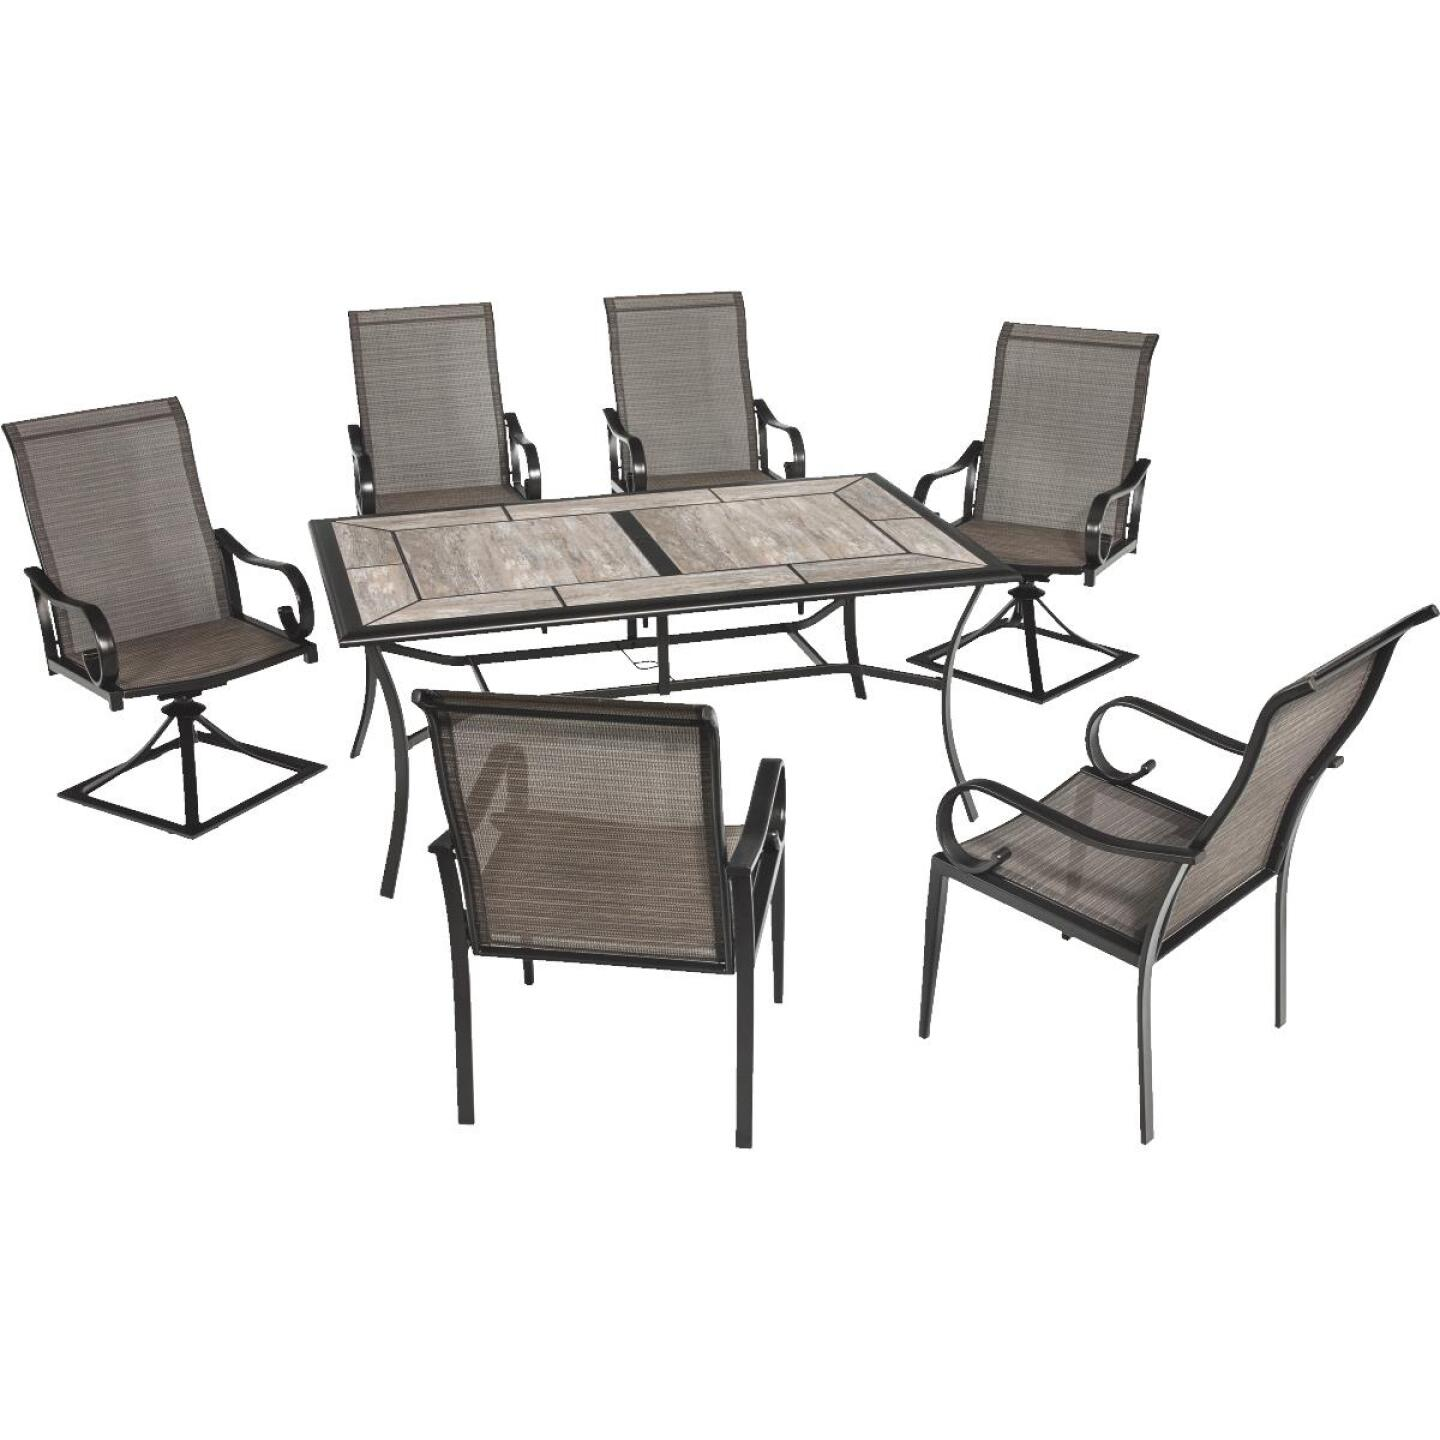 Outdoor Expressions Berkshire 7-Piece Dining Set Image 343